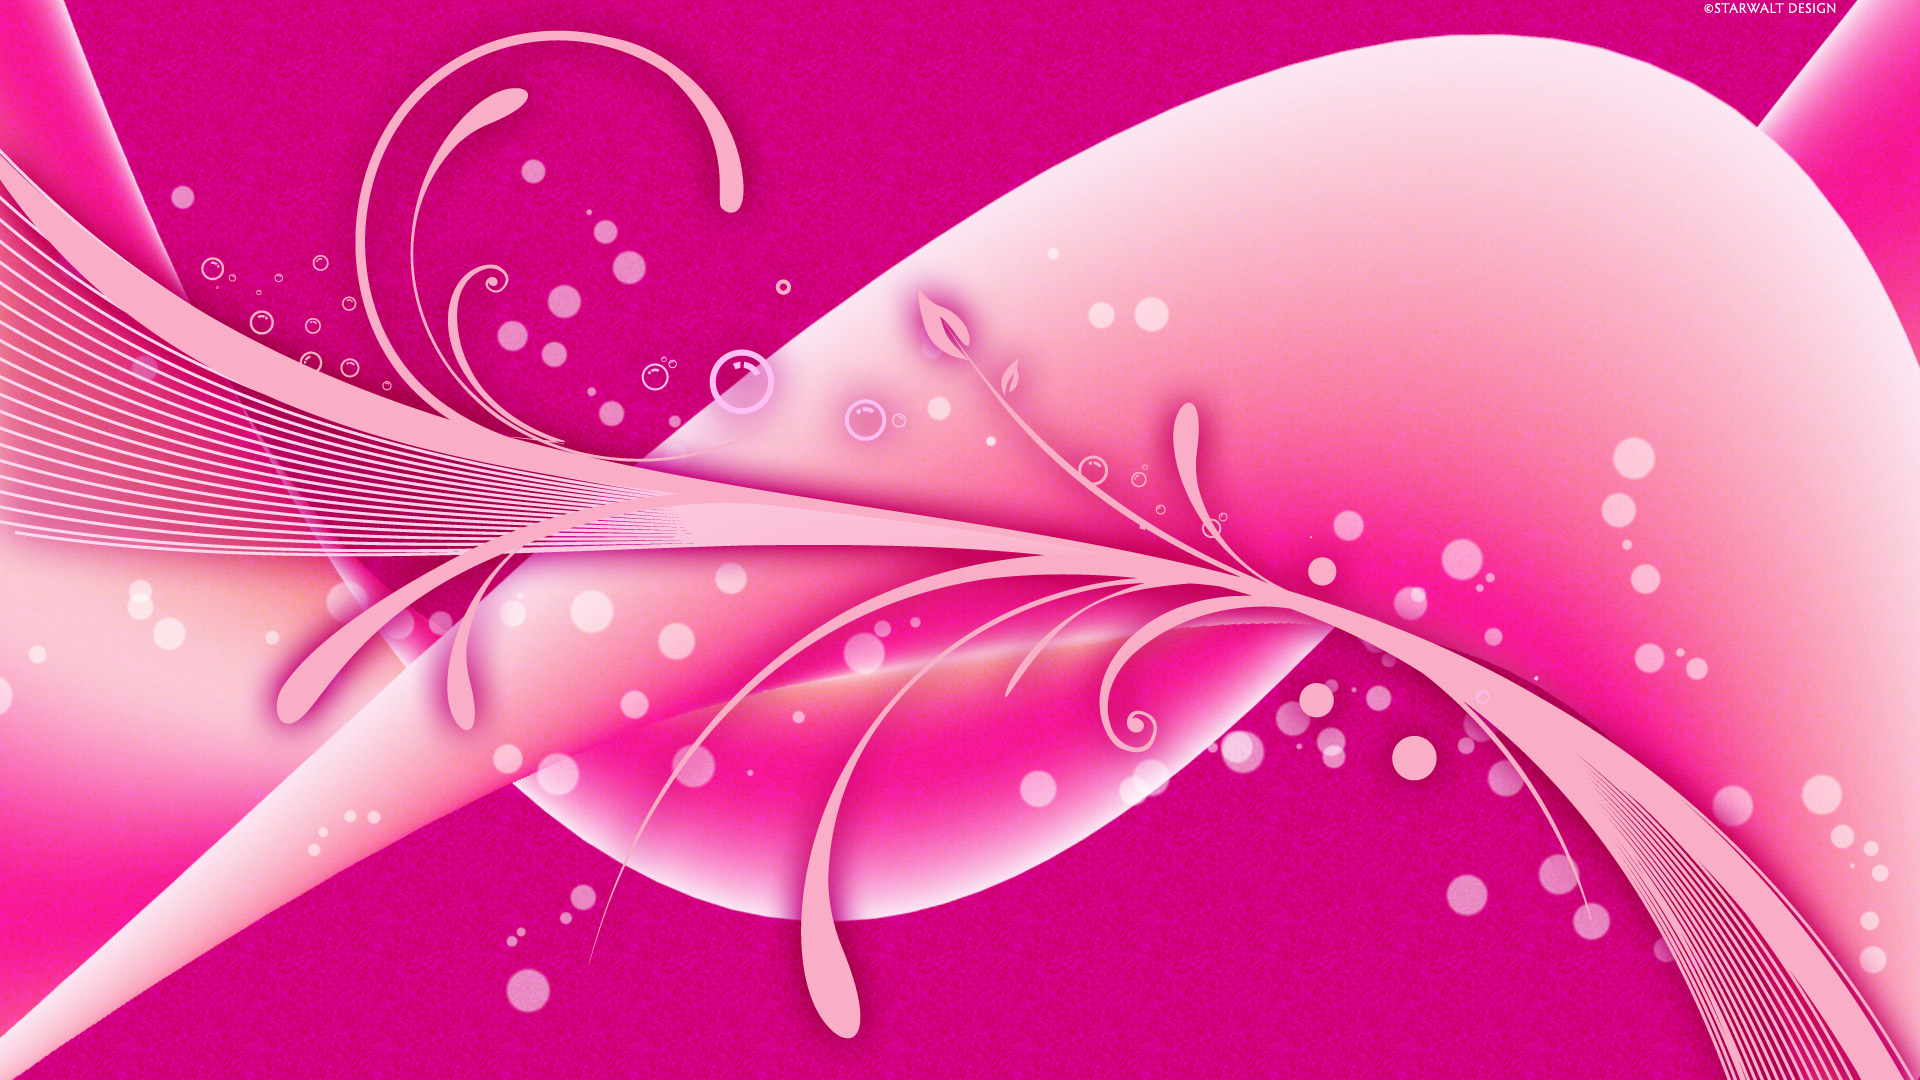 HD Pink Design Image Picture Wallpapers Screensavers for Desktop Background